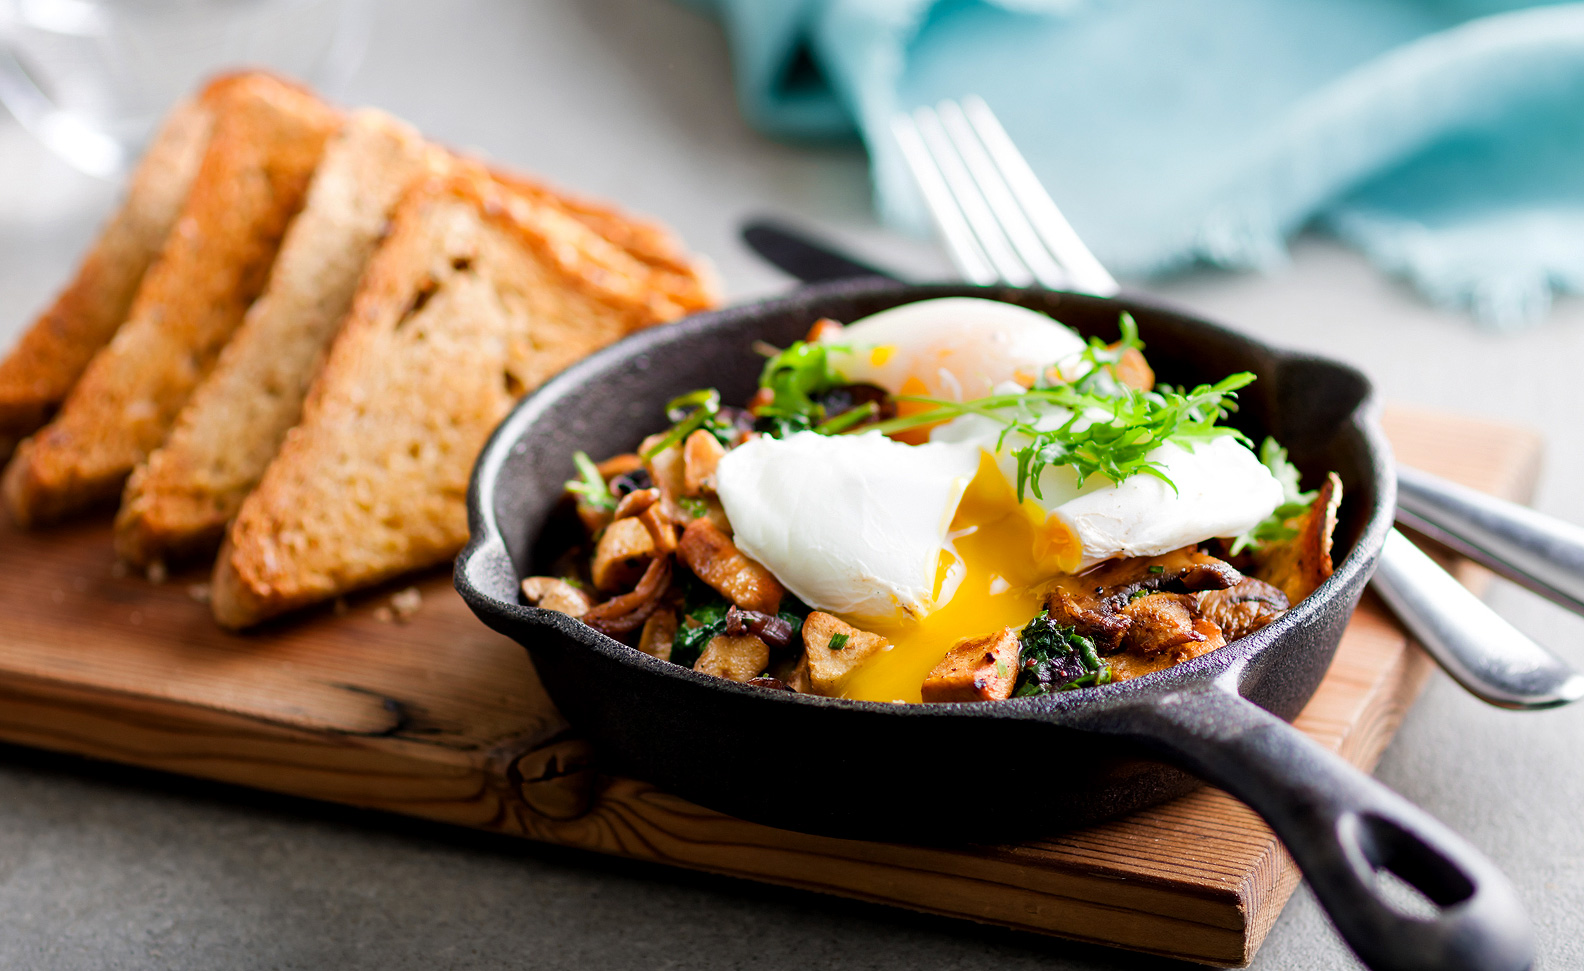 Fairmont Waterfront Hotel Brunch - Wild Mushroom Hash with Poached Eggs